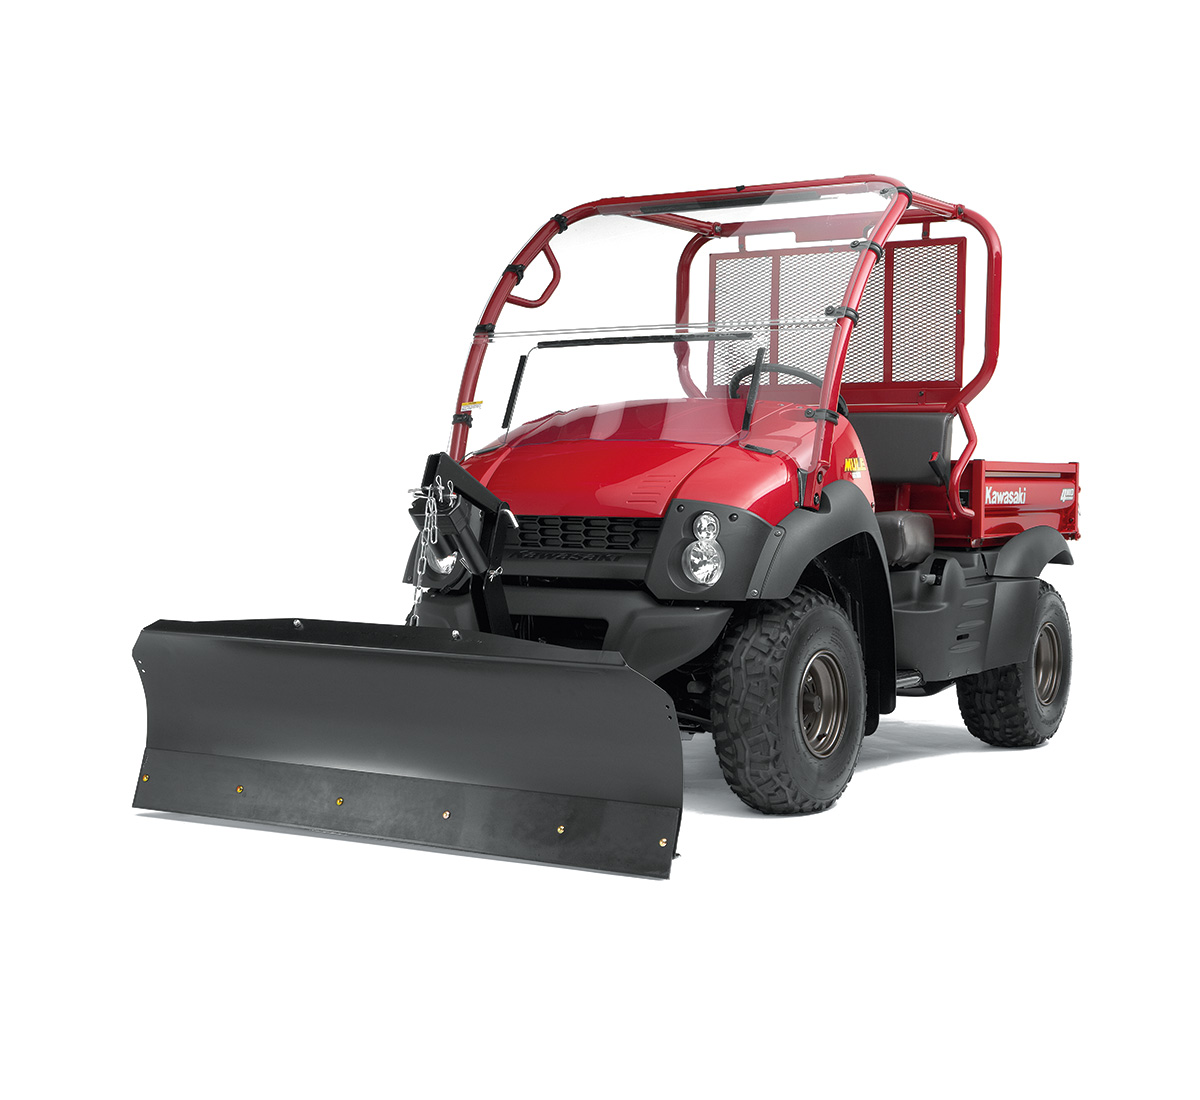 small resolution of kawasaki mule 2013 600 reviews autos post 2011 kawasaki mule 610 wiring diagram kawasaki mule 610 wiring diagram 2007